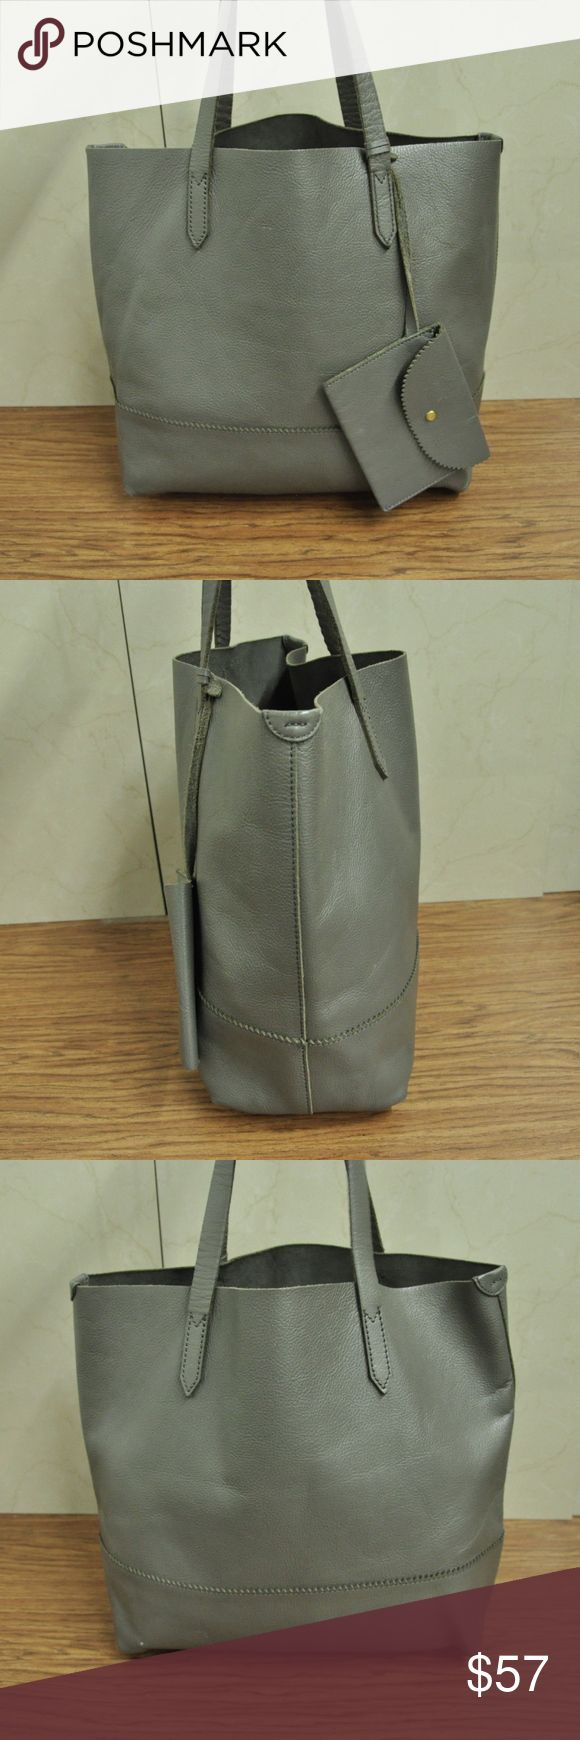 J CREW DOWNING TOTE  BAG  GRAY LEATHER J CREW DOWNING TOTE  BAG  GRAY LEATHER   the purse is pre-owned  good CONDITION  the leather has signs of wear  STAINS ON LINING no tear no holes no odors  if you need more photos let me know HEIGHT 13'' WIDTH 14'' DEPTH 9'' STRAP DROP 14'' J CREW Bags Totes